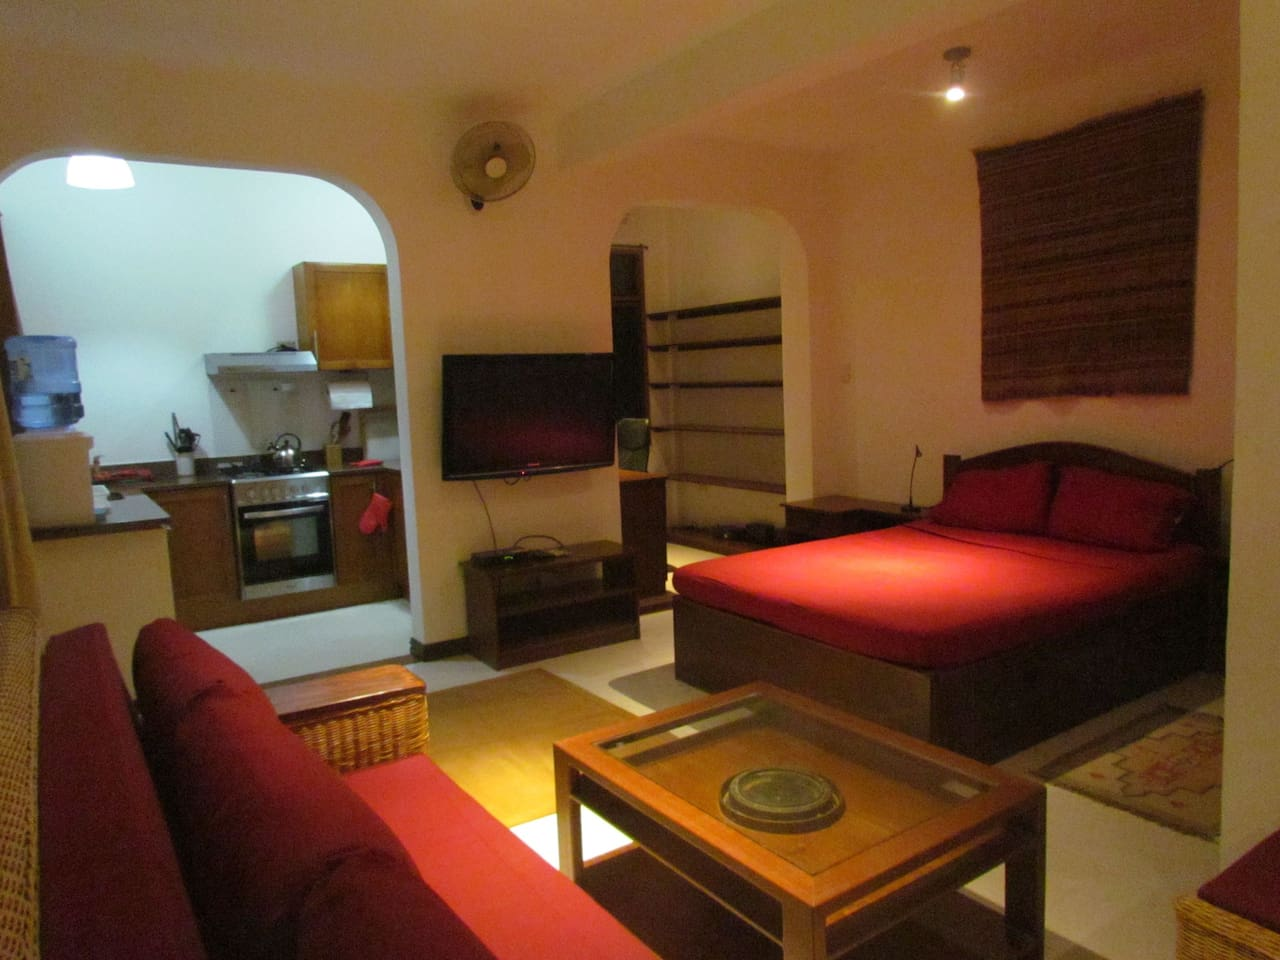 High quality studio, with kitchen, bed, sofa, TV, wifi and small office